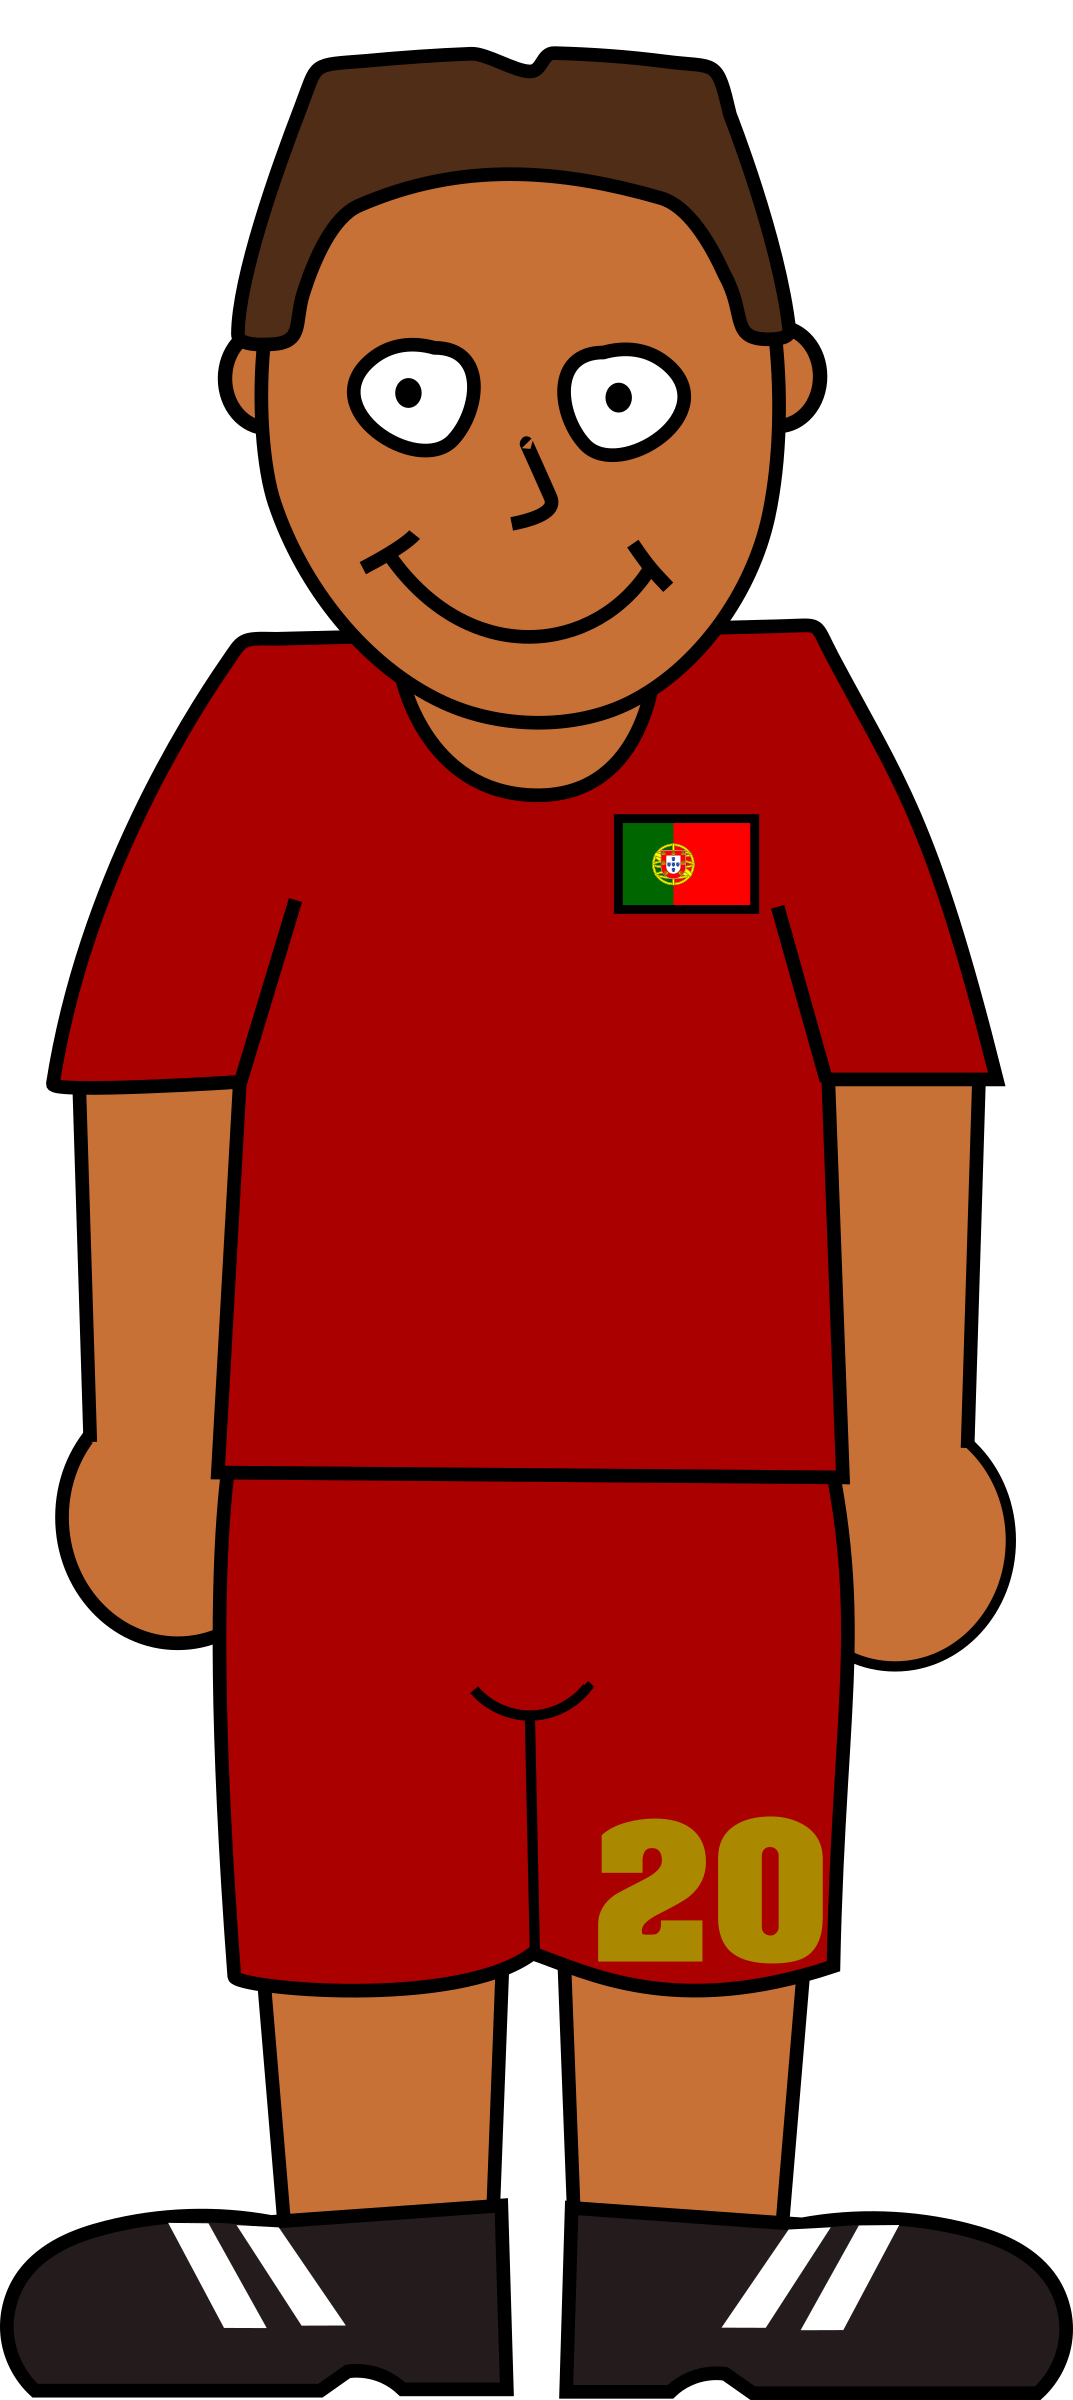 Football player portugal by Bingenberg